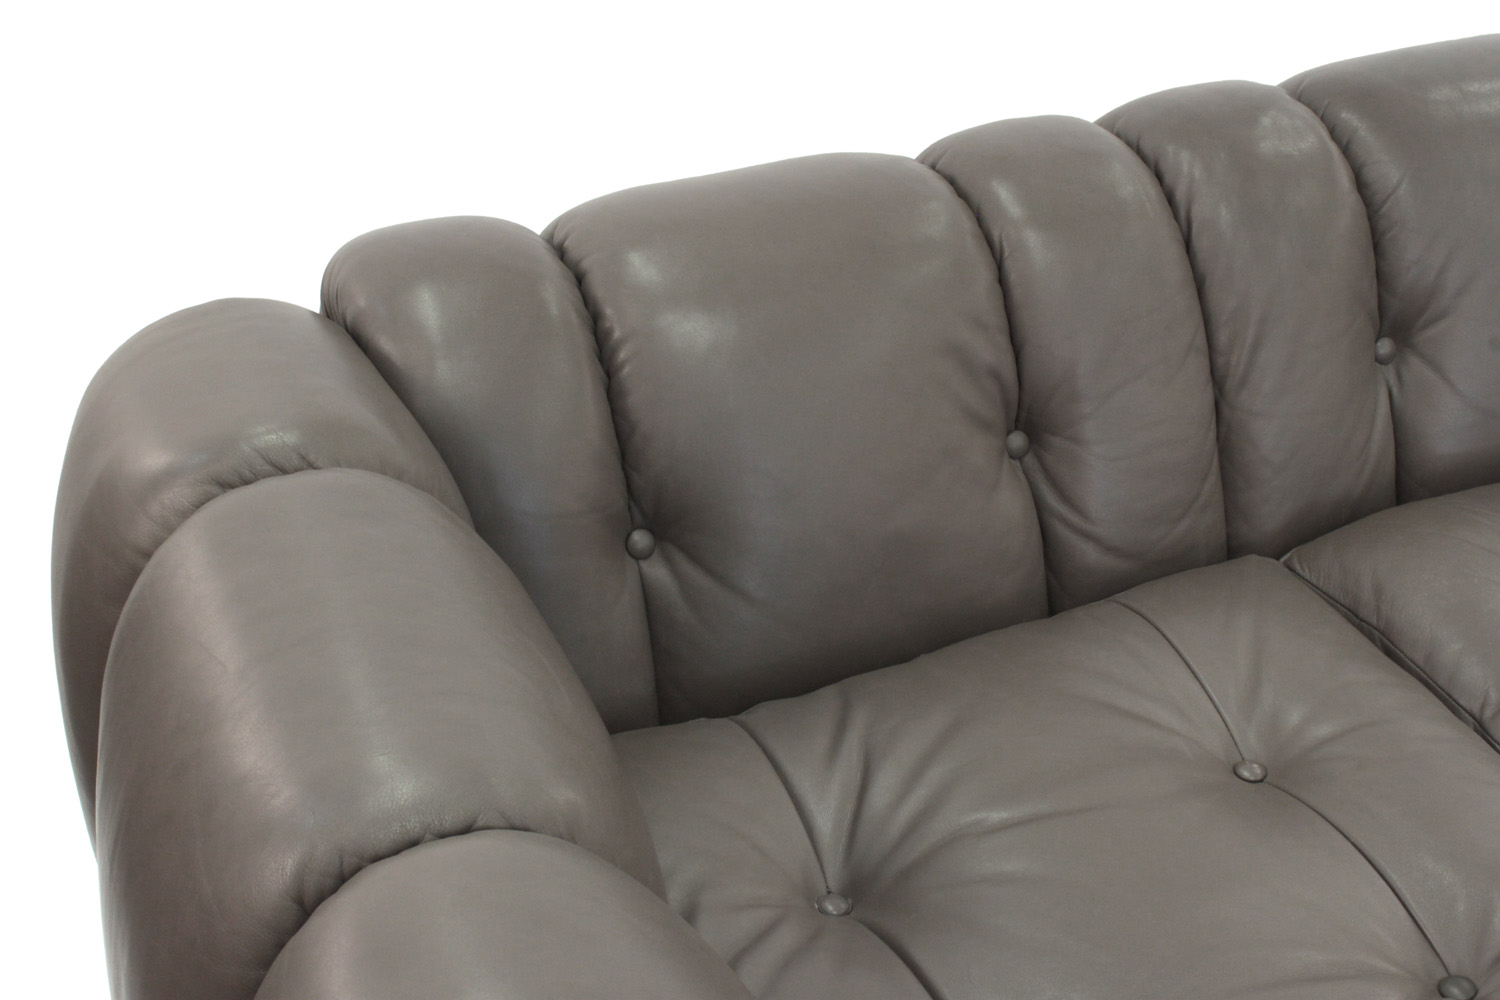 Pace 95 putty leather steel base sofa84 corner hires.jpg